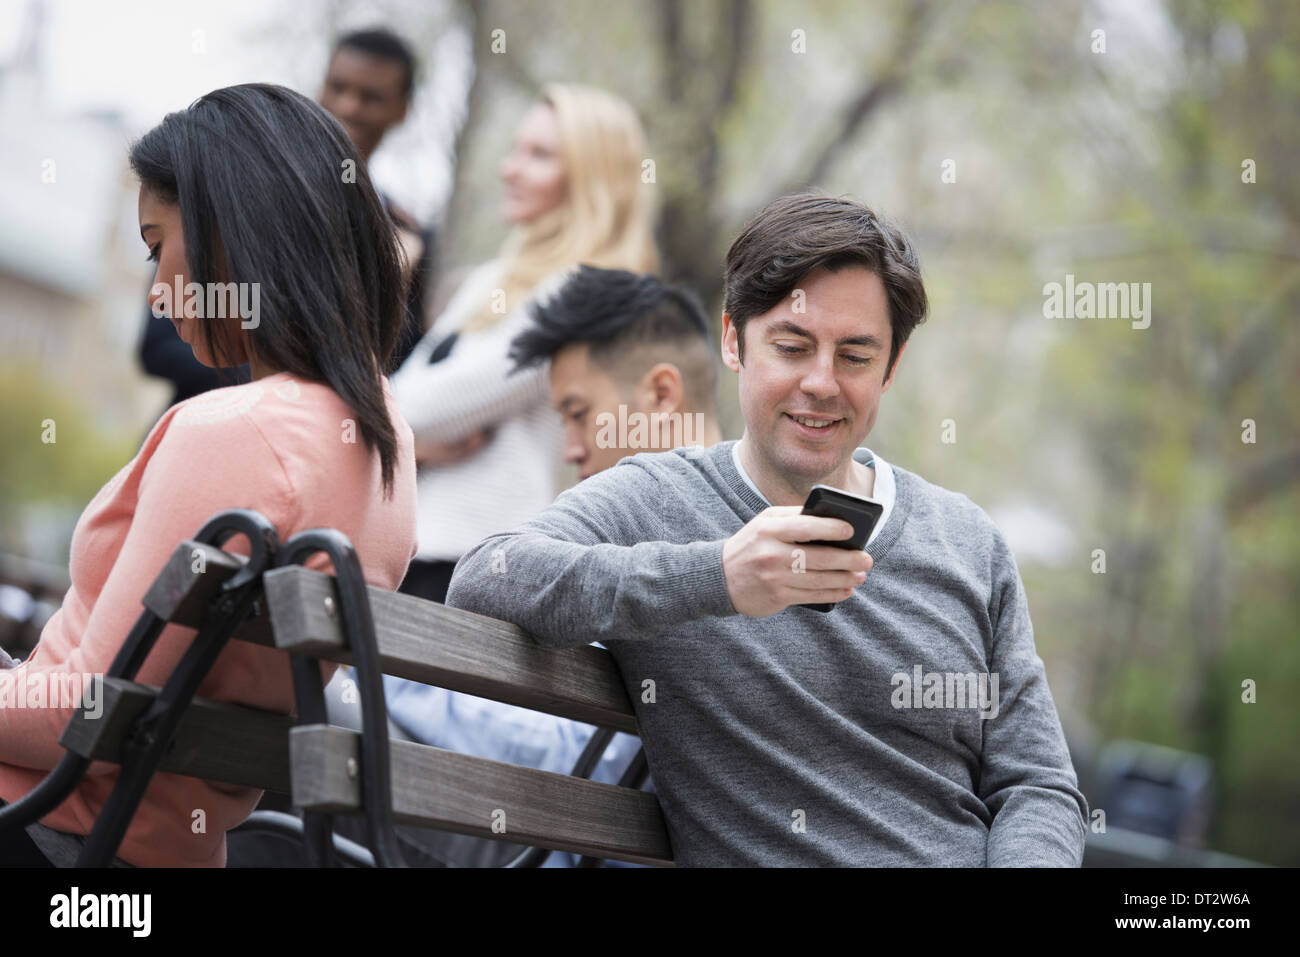 View over citycity park Sitting on a park bench Five people men and women checking their phones - Stock Image